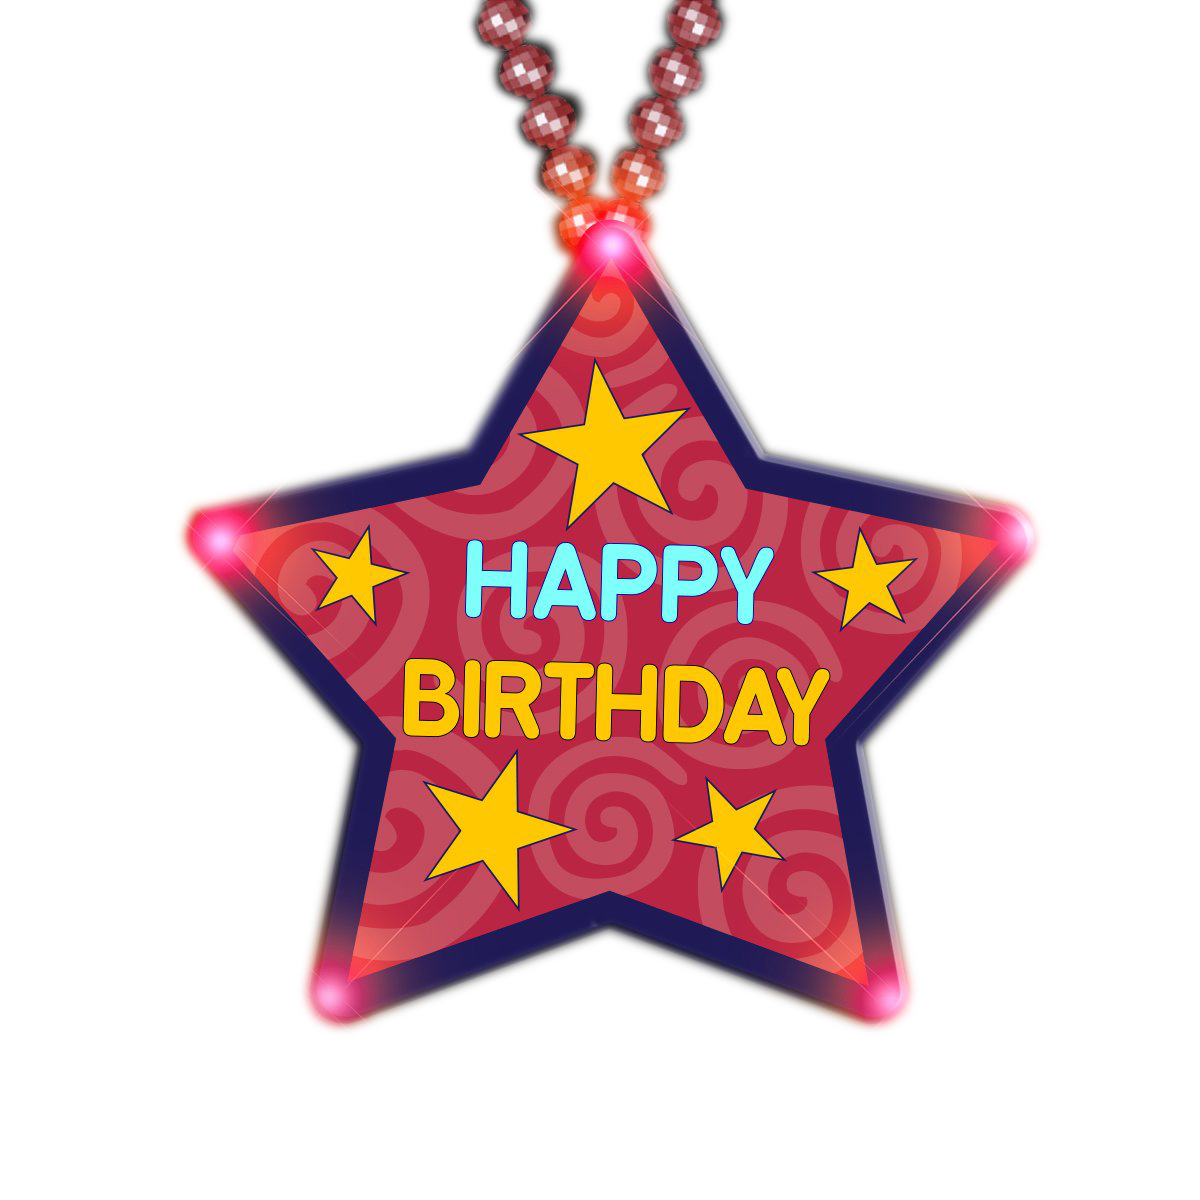 Huge Happy Birthday Star Beaded Necklace All Products